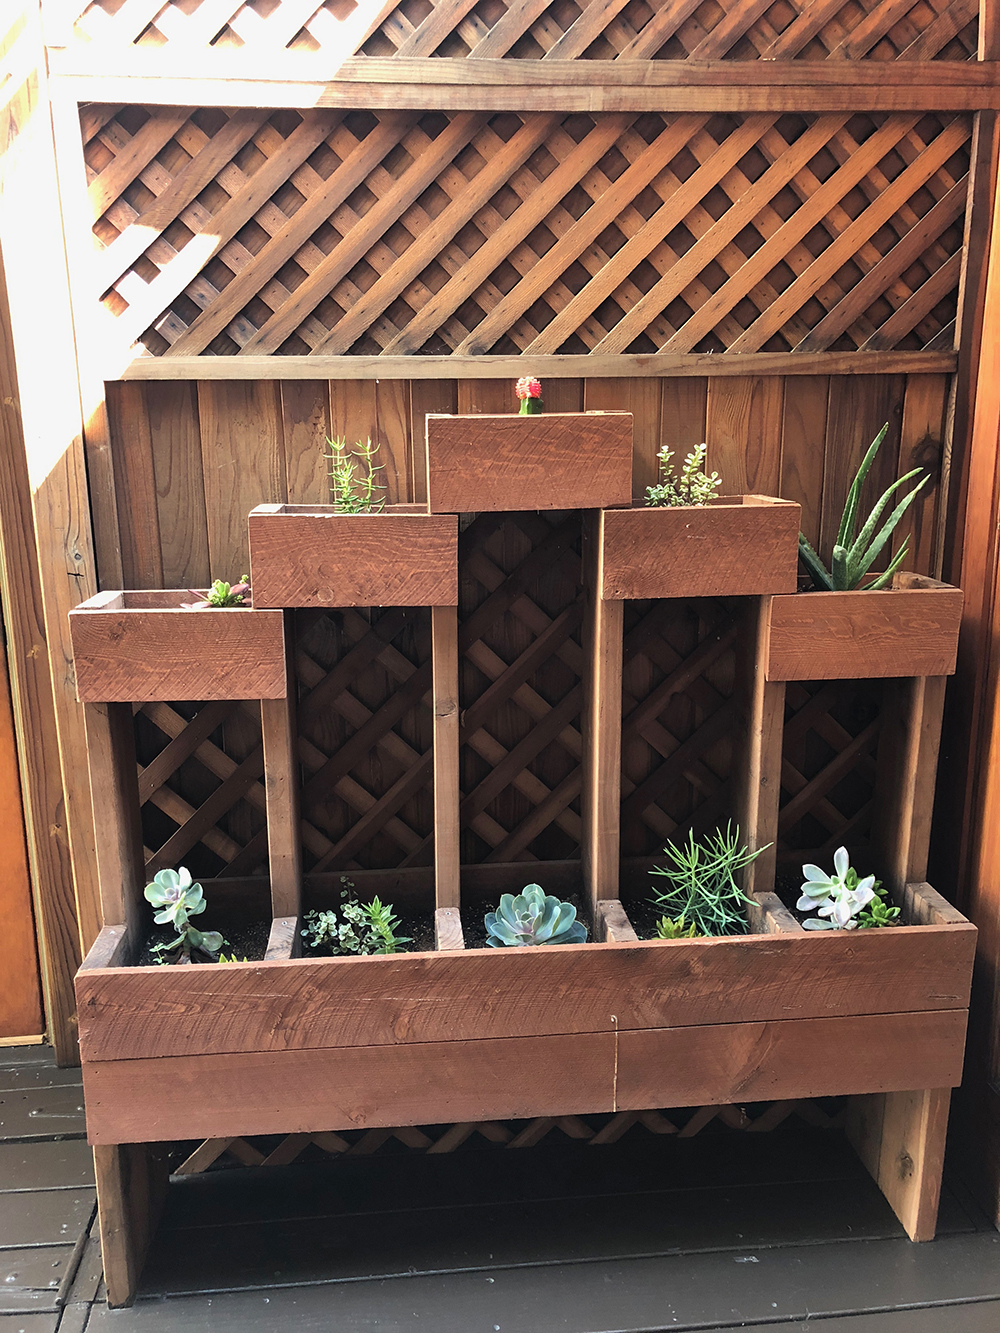 The outdoor patio includes a pretty succulent display!